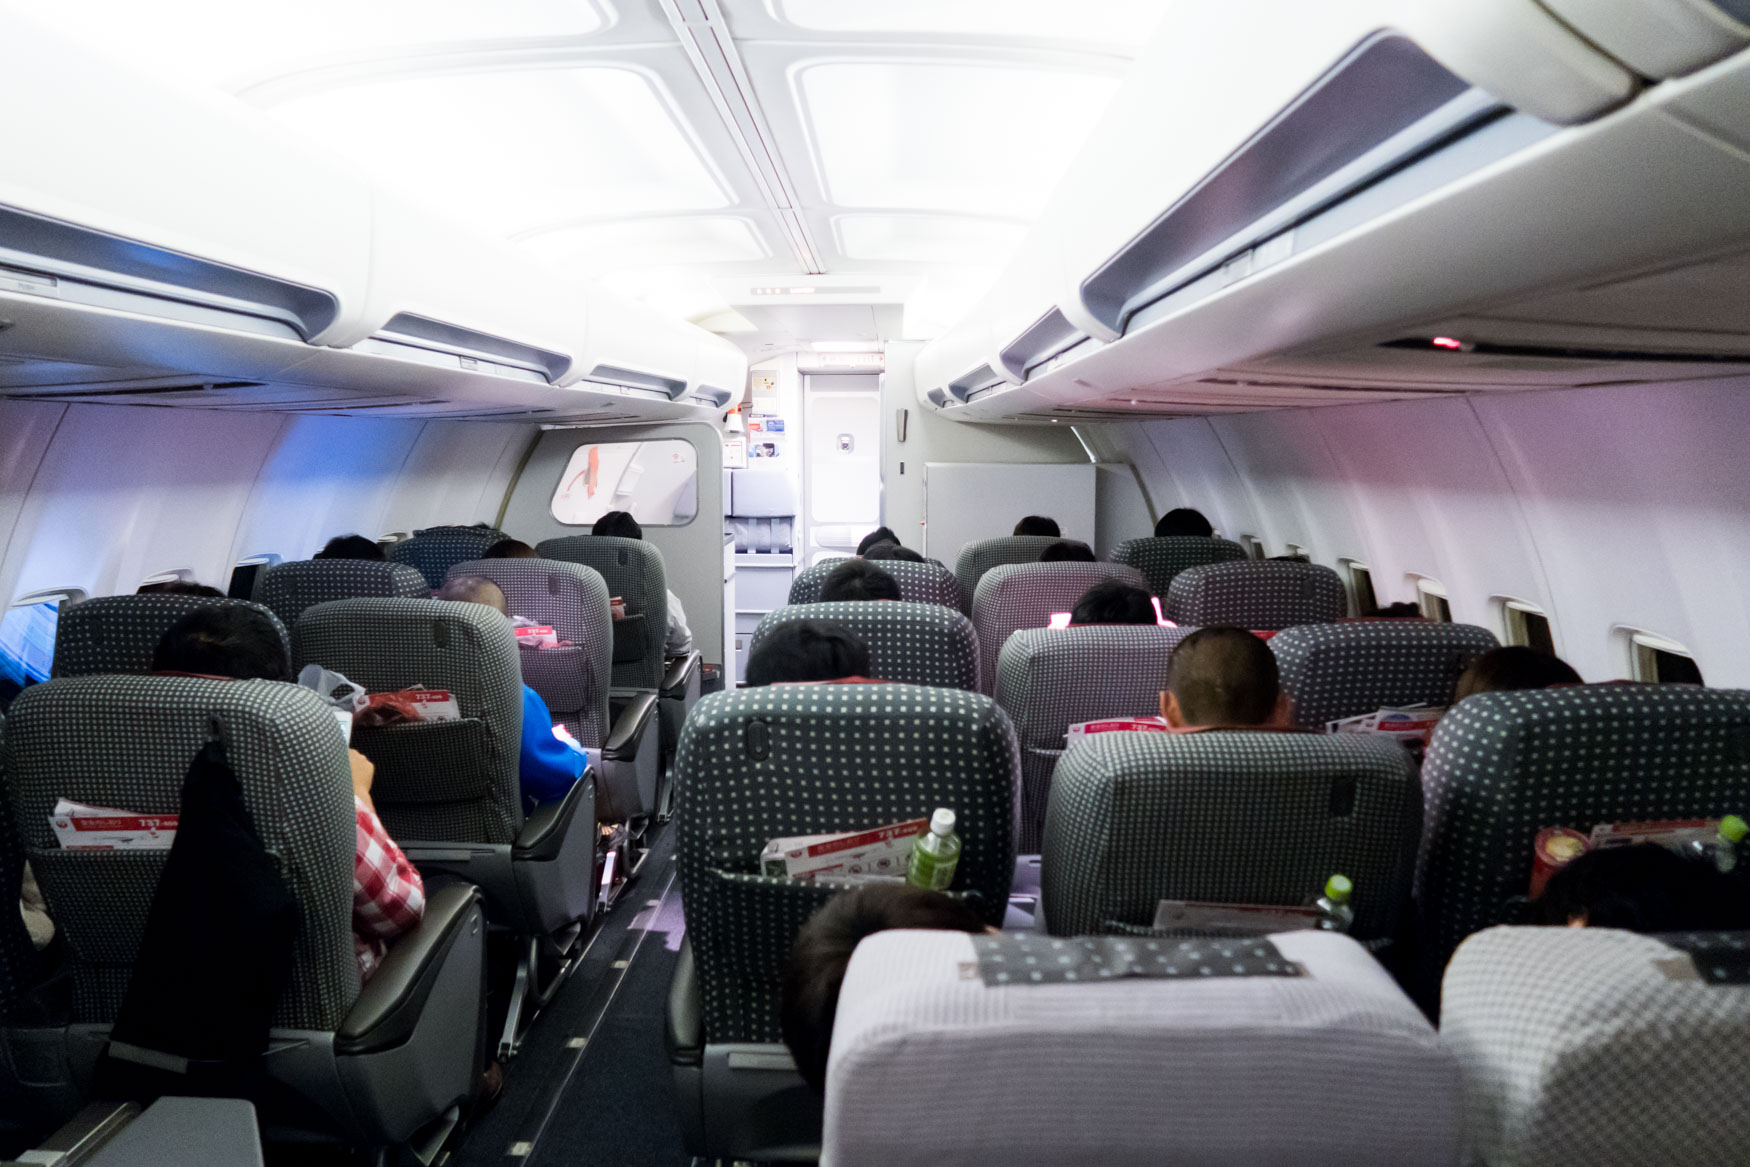 Japan Airlines Class J Upgraded from Avios Ticket